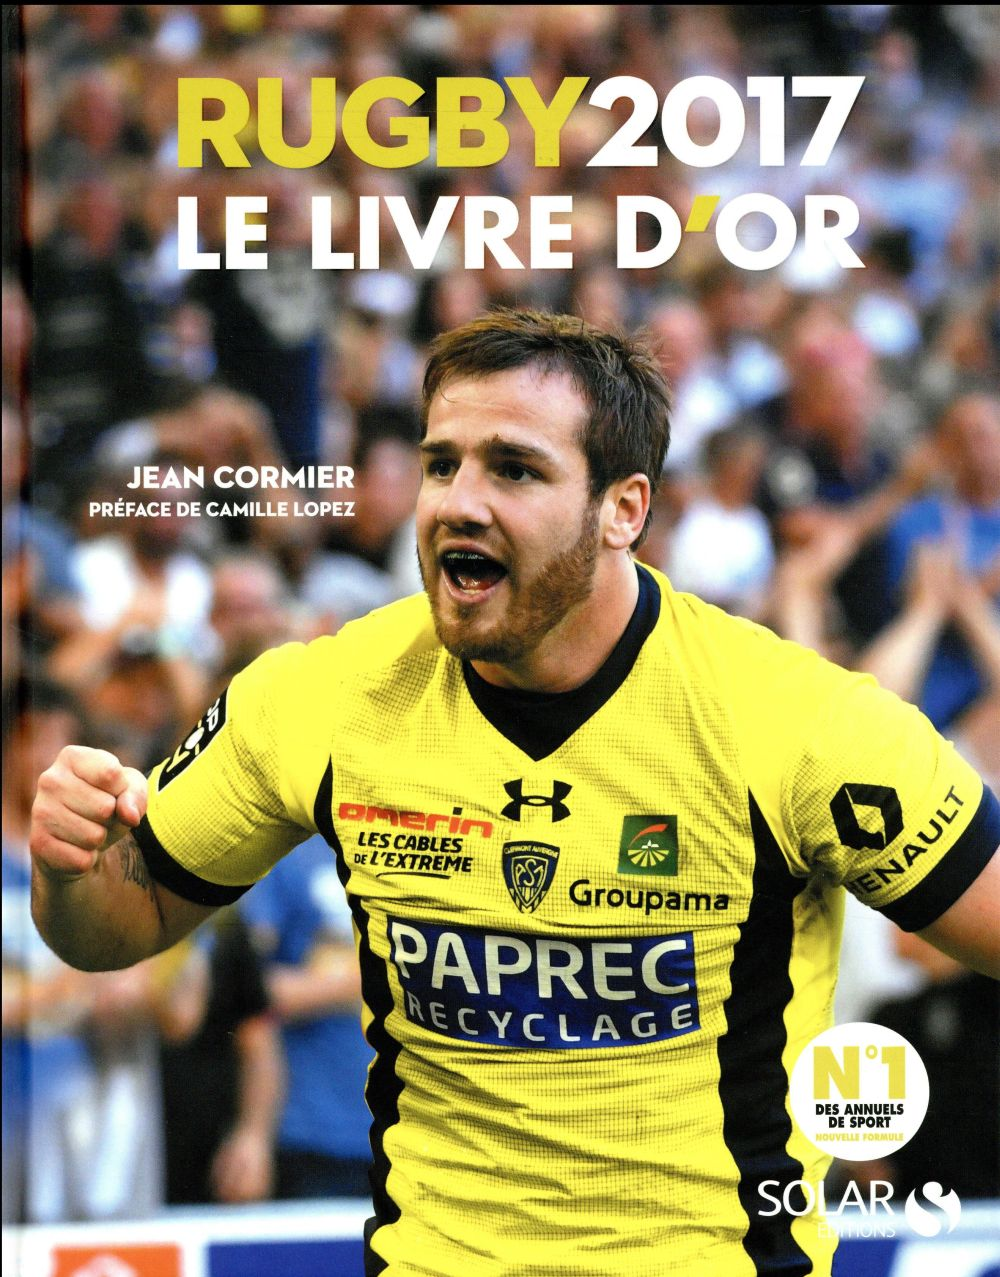 Rugby 2017 ; le livre d'or